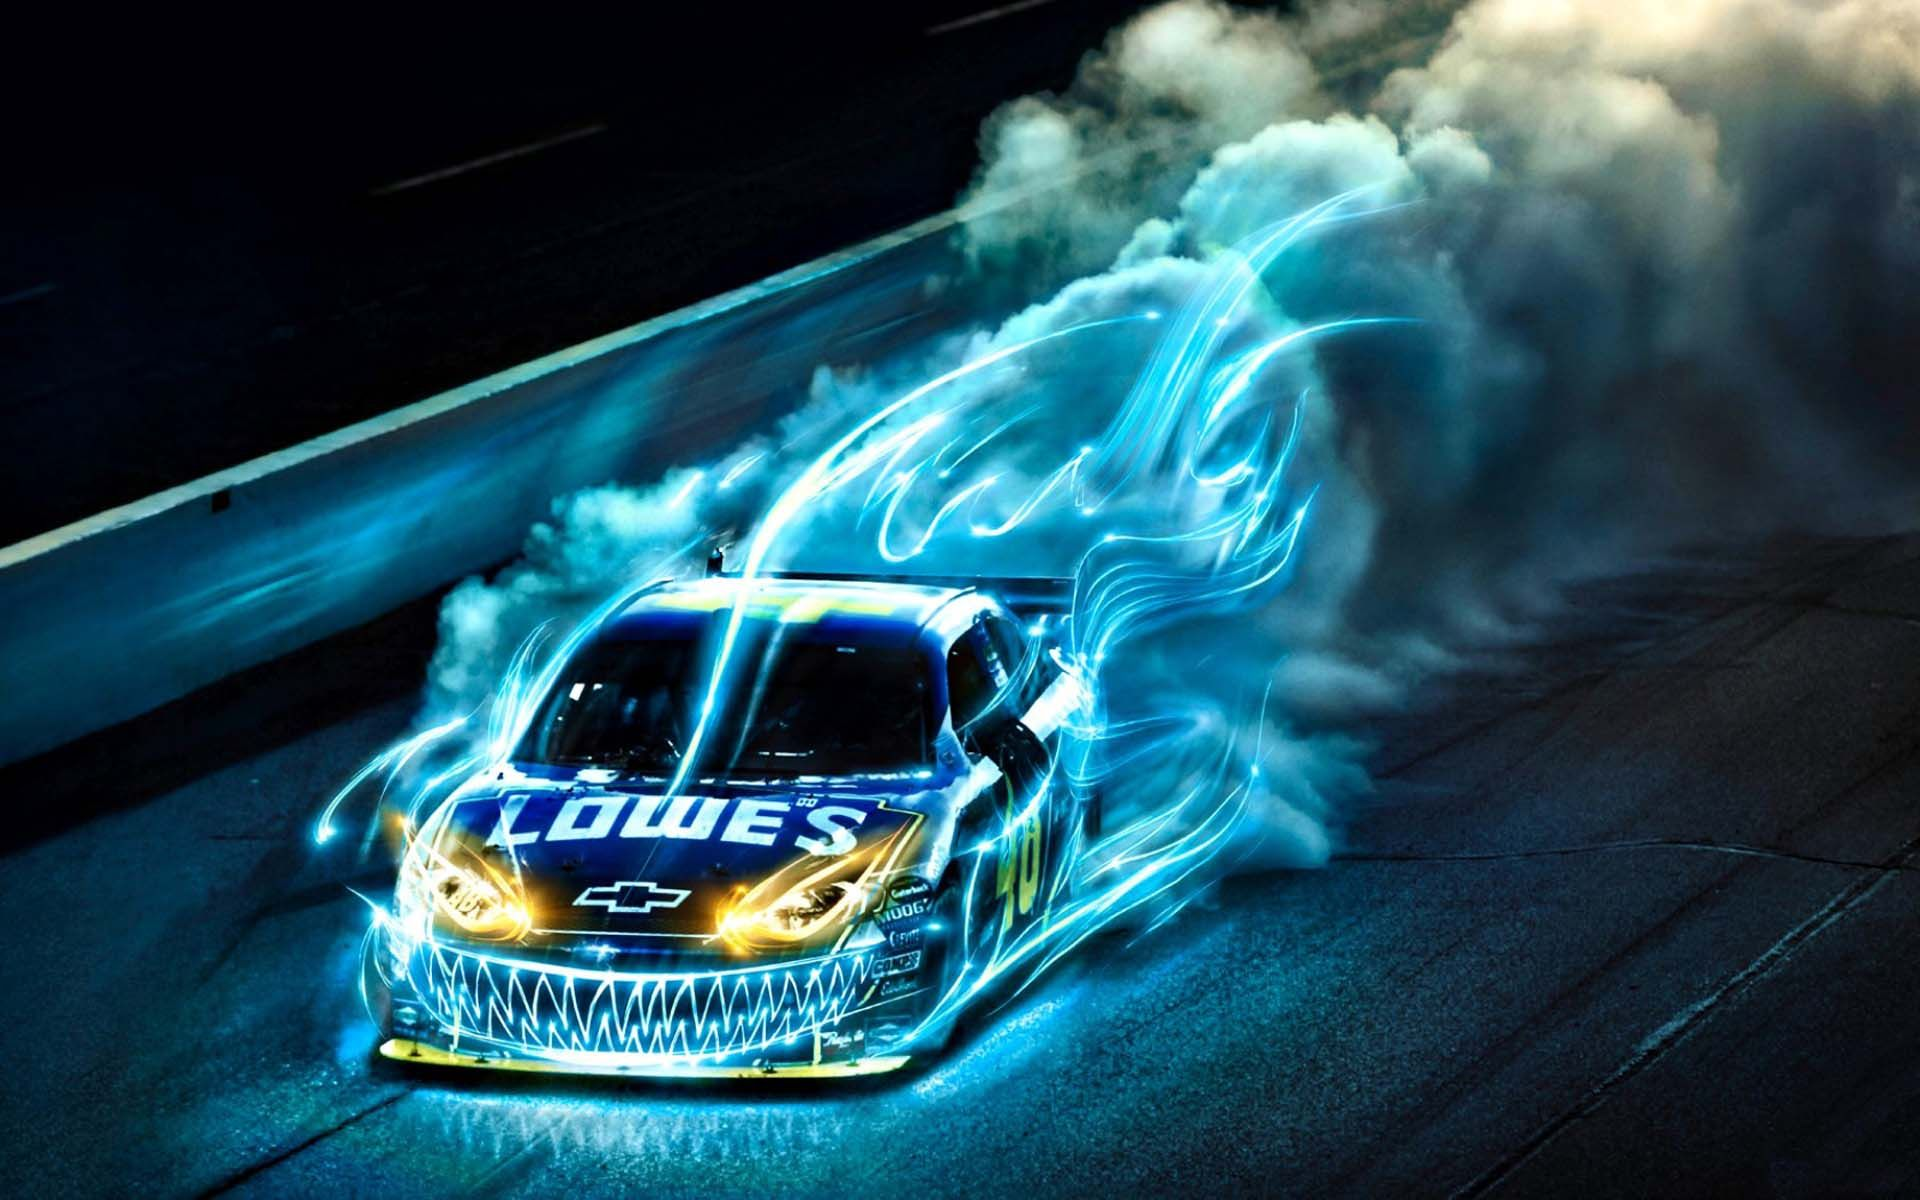 Cool Race Cars Google Search Whoooo Pinterest - Cool cars on fire